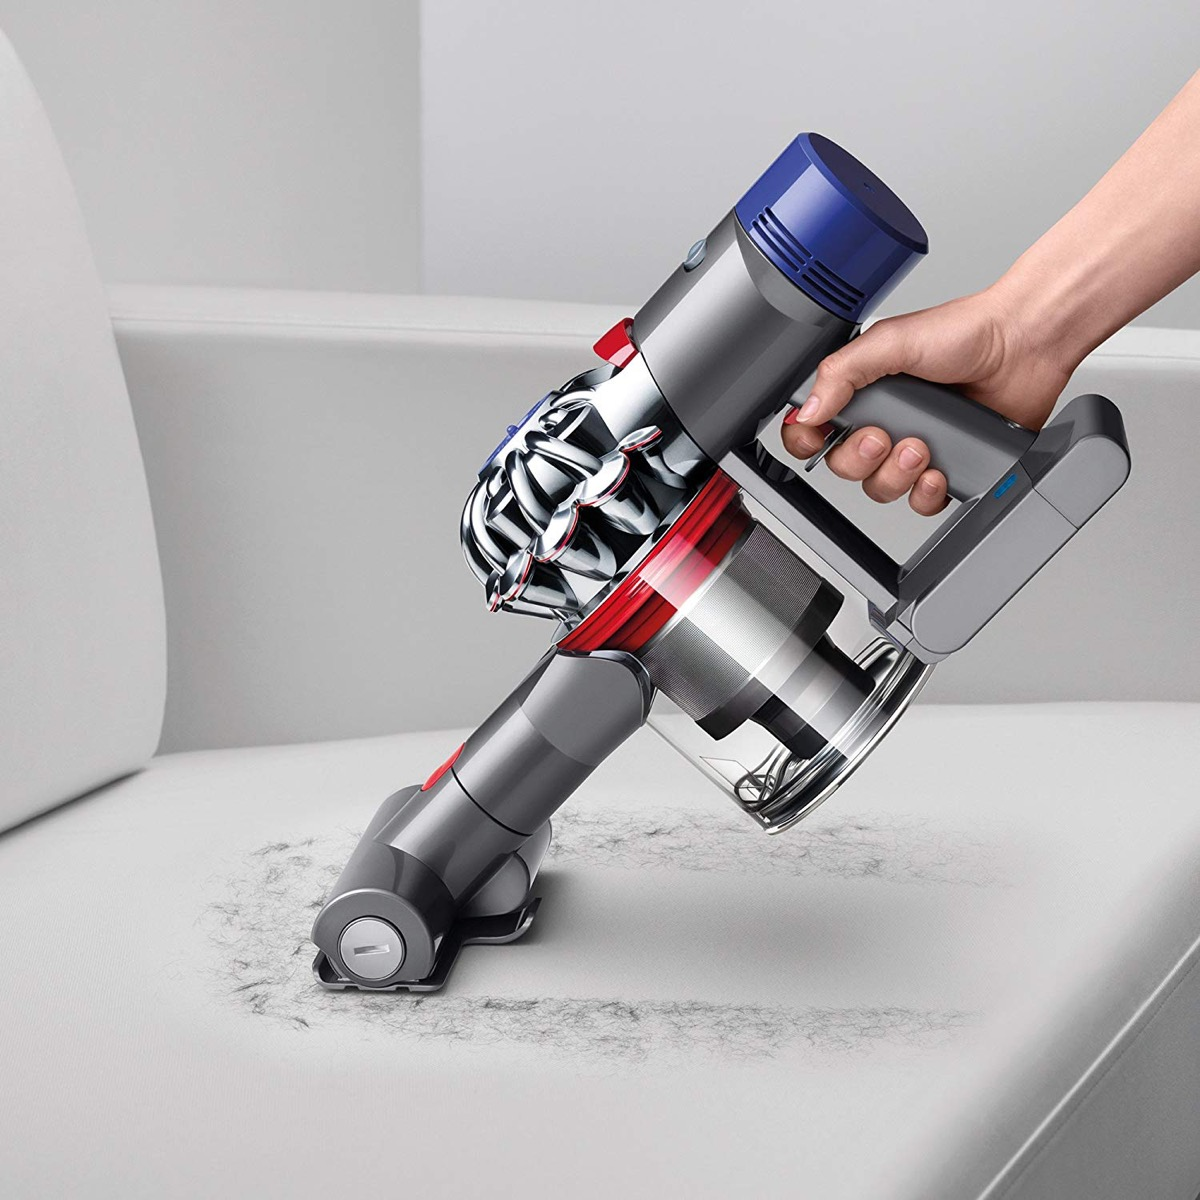 dyson animal vacuum appliances with cult followings